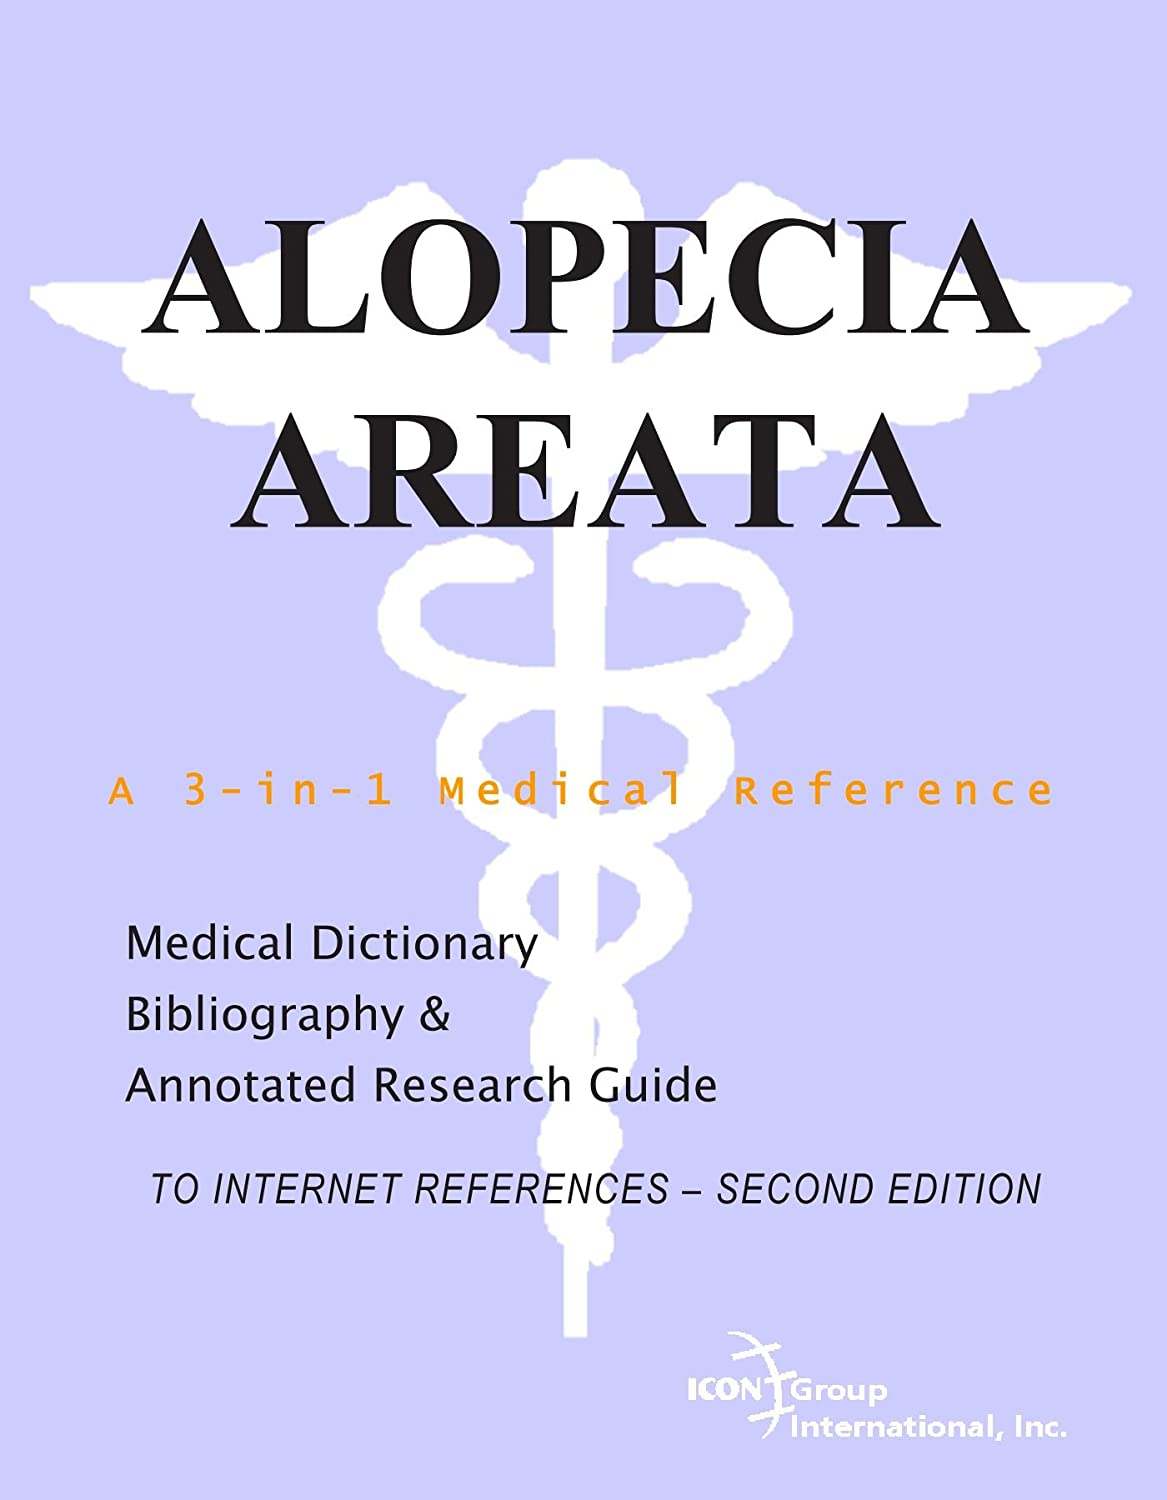 Alopecia Areata - A Medical Dictionary, Bibliography, and Annotated Research Guide to Internet References - SECOND EDITION